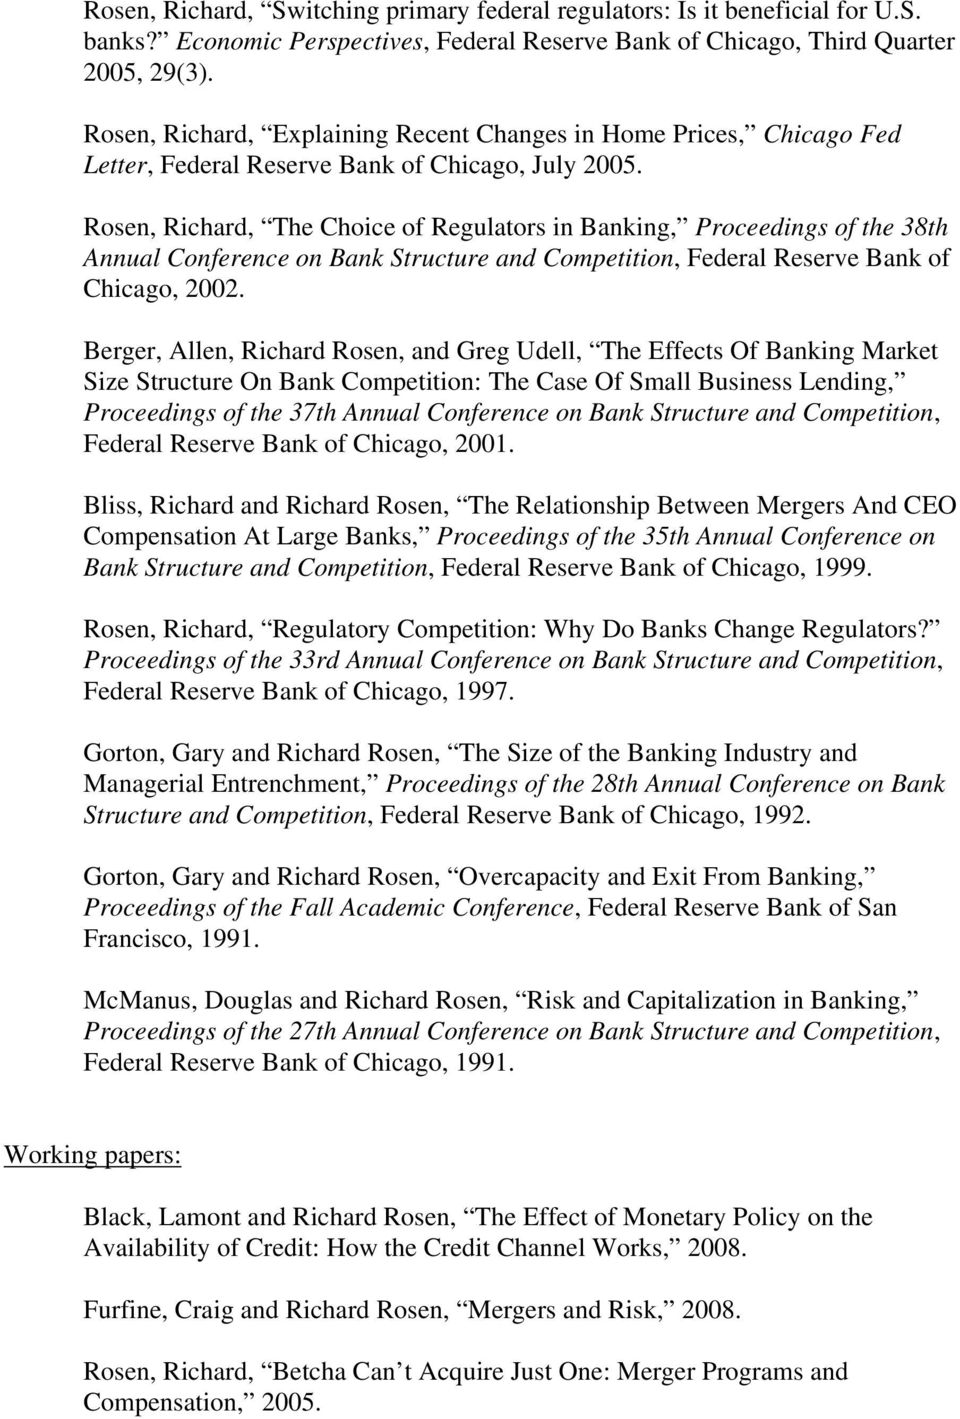 Rosen, Richard, The Choice of Regulators in Banking, Proceedings of the 38th Annual Conference on Bank Structure and Competition, Federal Reserve Bank of Chicago, 2002.